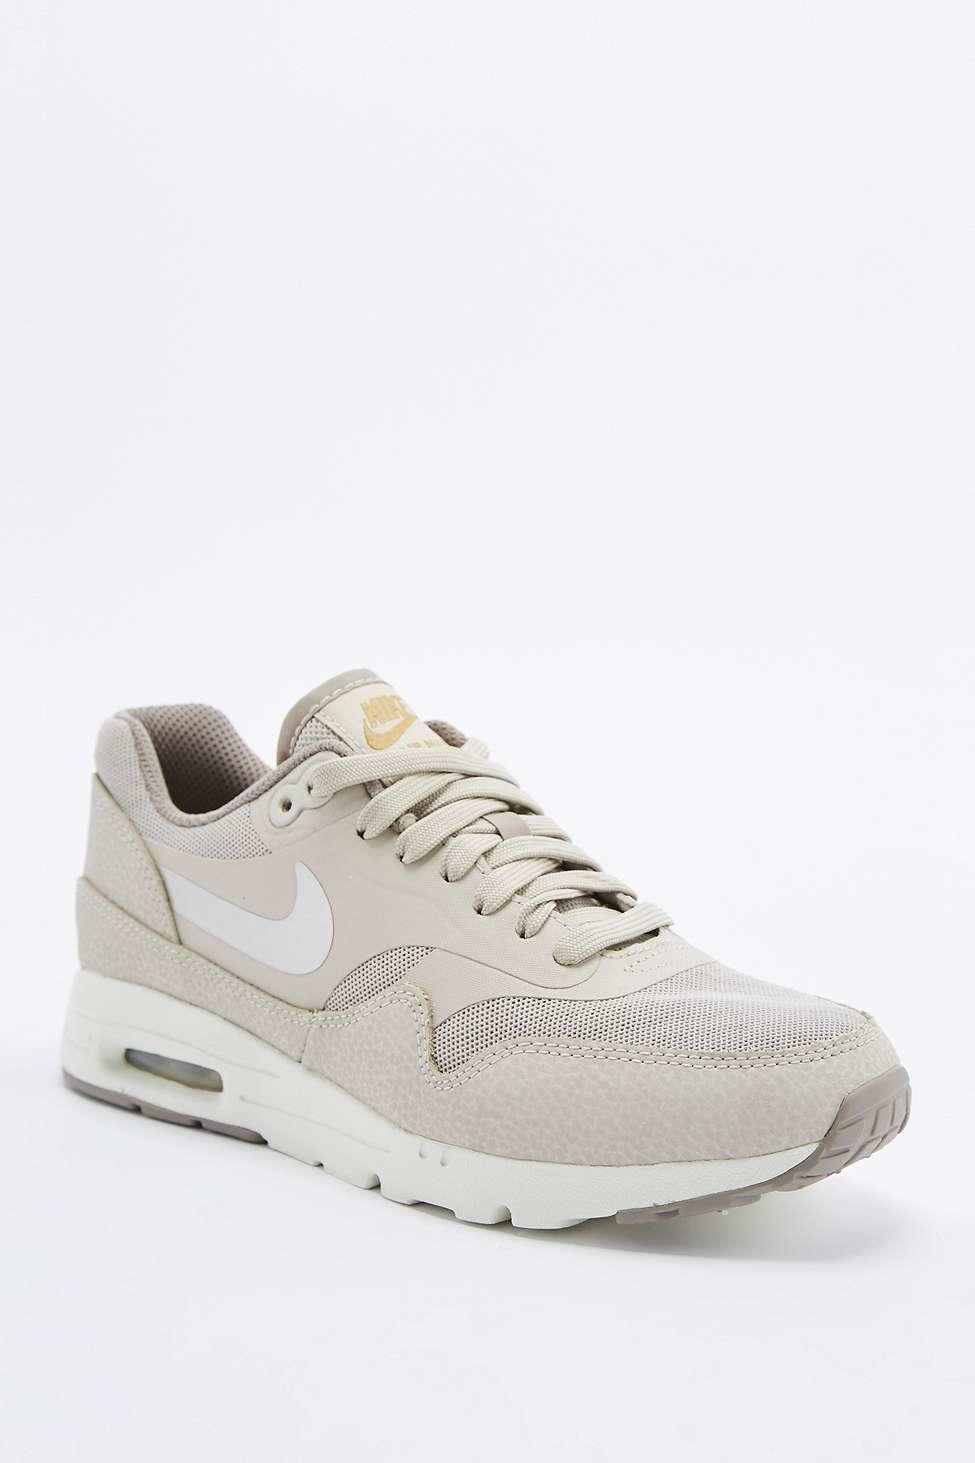 nike air max 1 essential beige trainers from urban. Black Bedroom Furniture Sets. Home Design Ideas